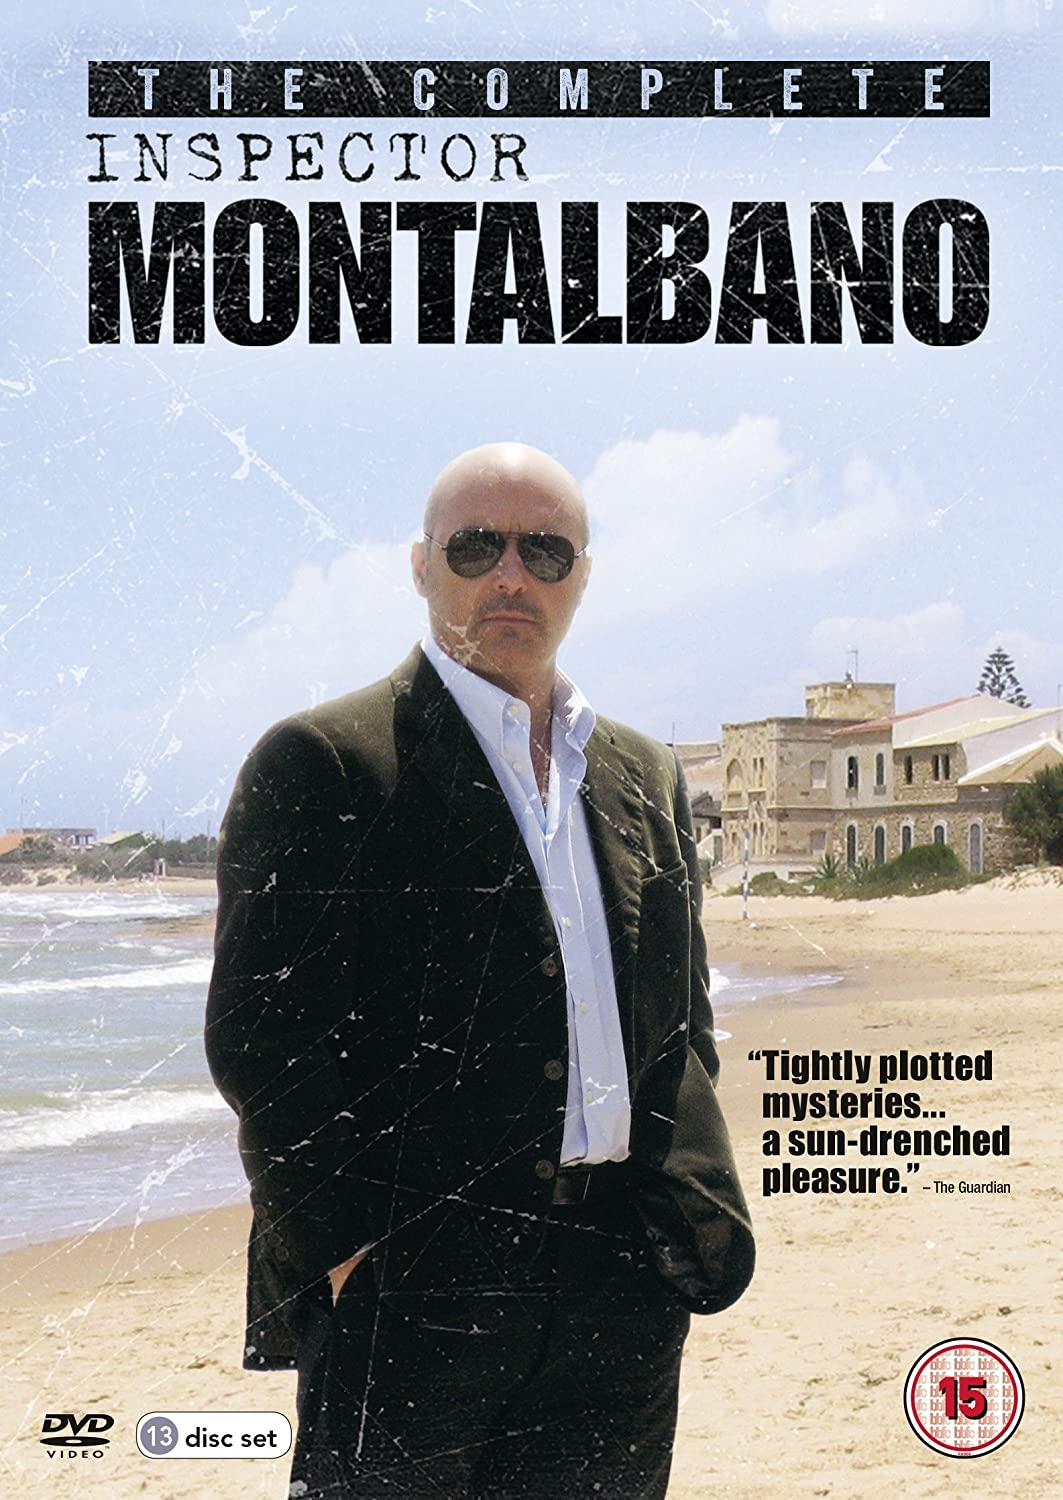 Complete Inspector Montalbano